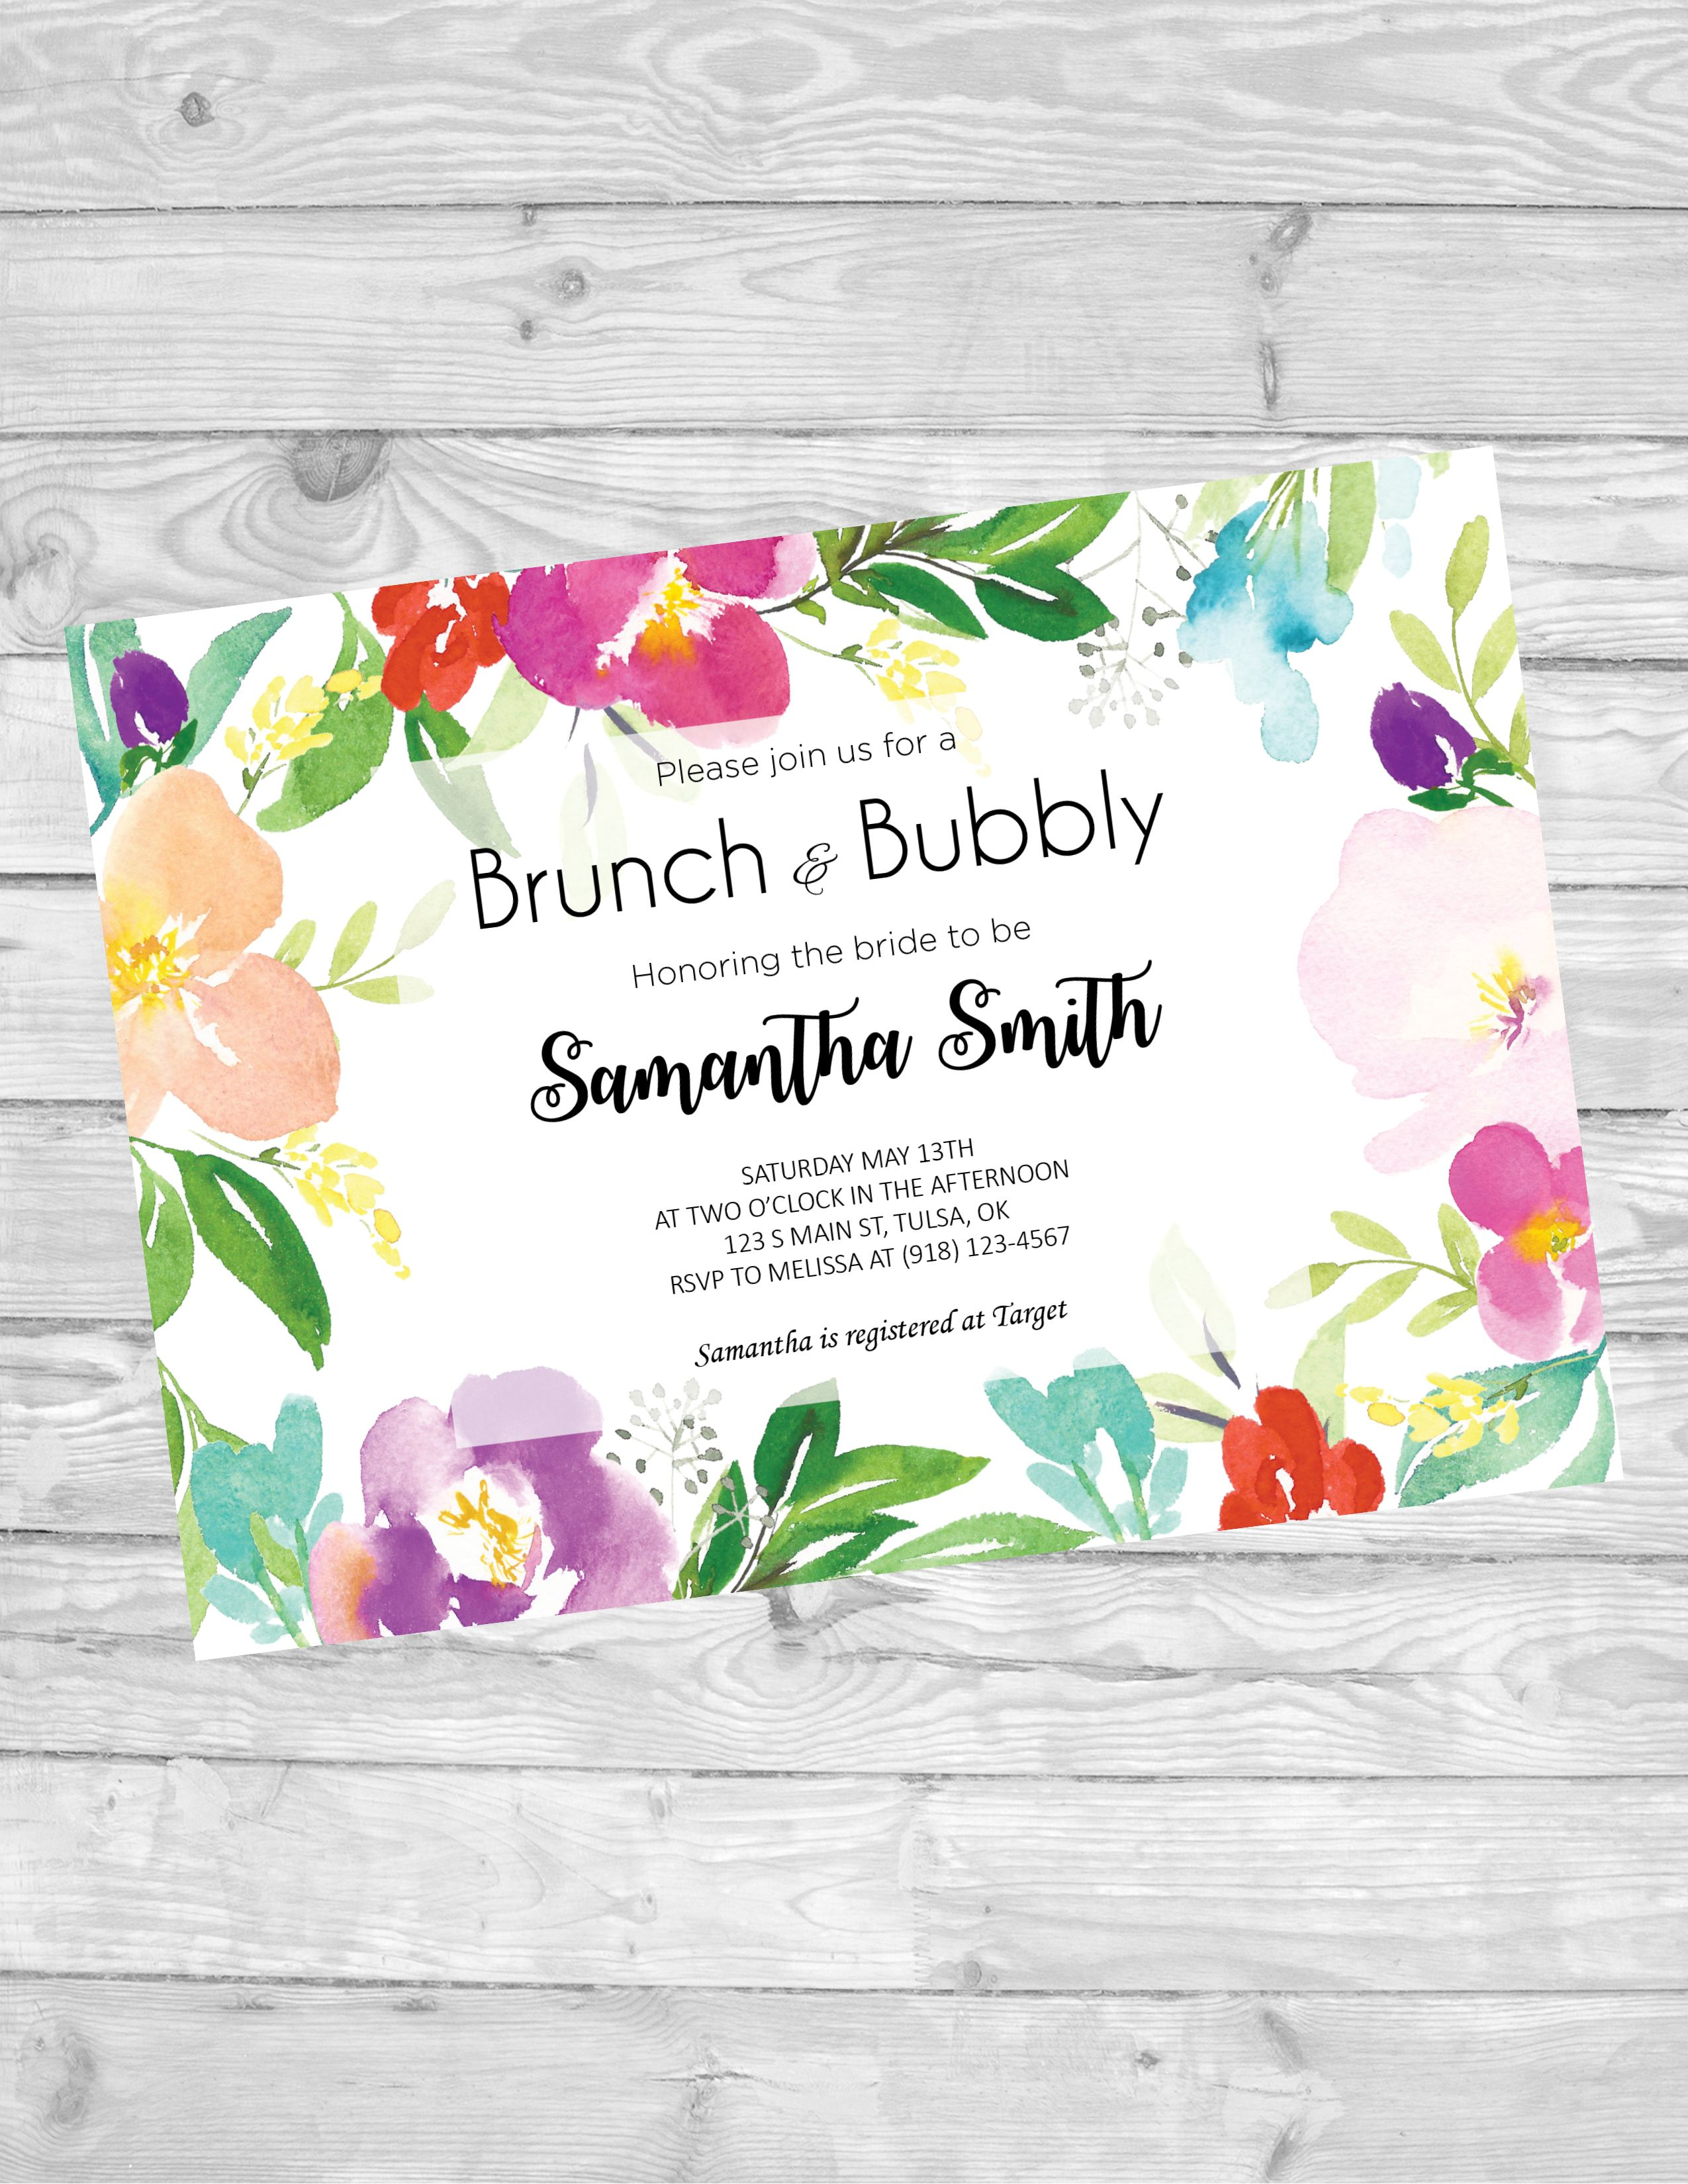 Brunch and bubbly bridal shower invitation - digital download - customized - watercolor flowers